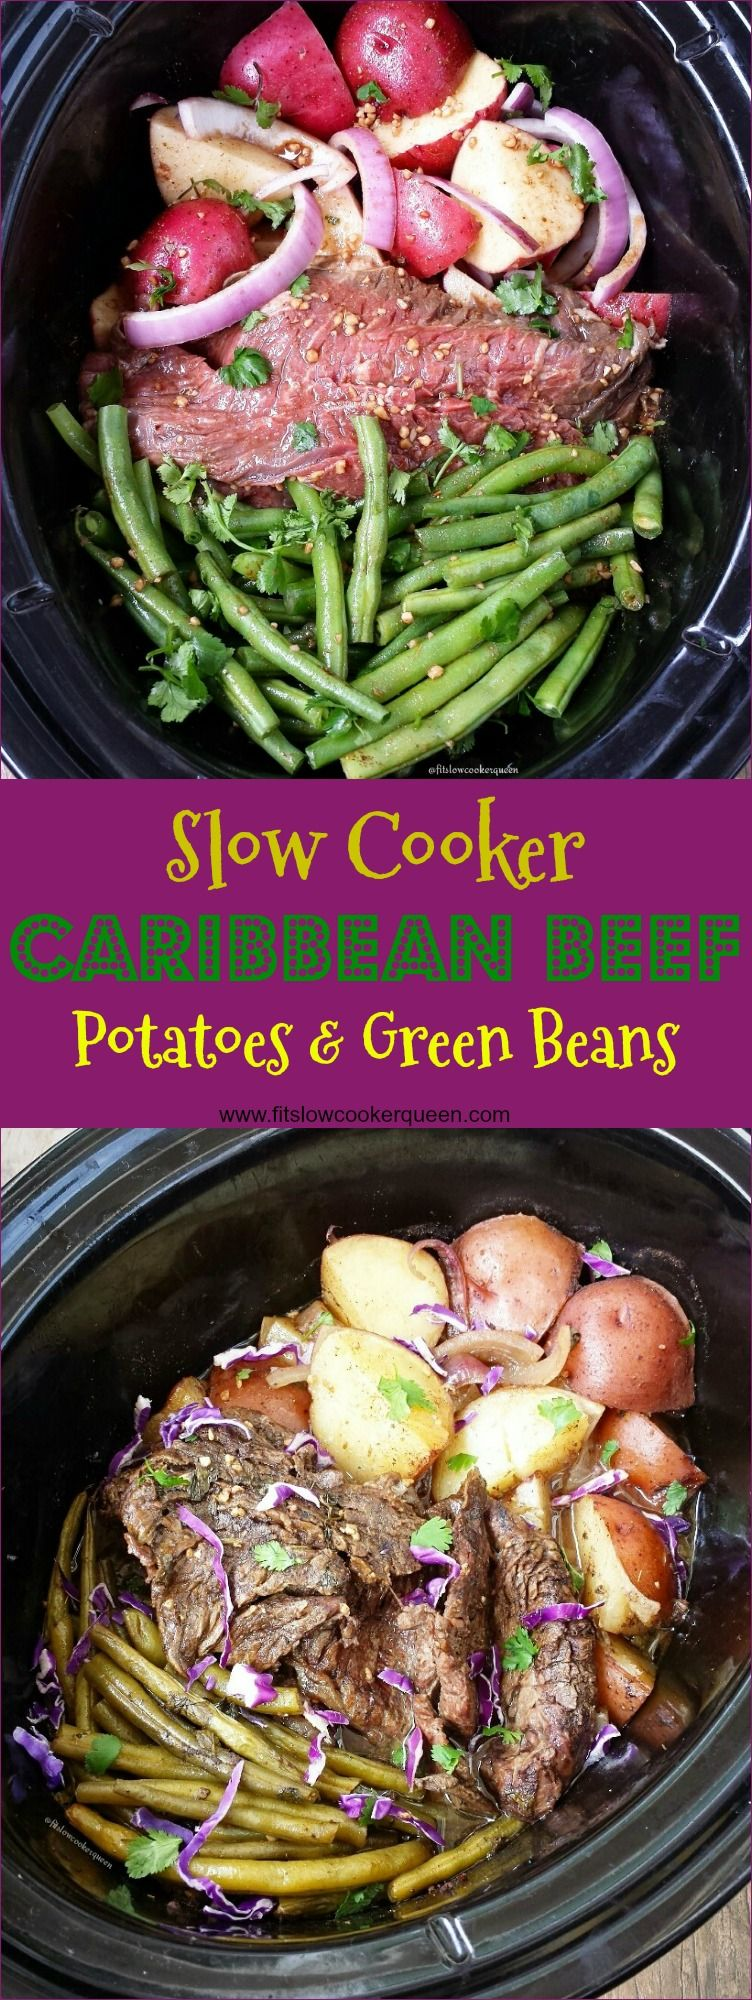 Crockpot / Slow Cooker healthy whole30 paleo - A healthy, homemade sauce Caribbean flavored sauce slow cooks on top of beef, potatoes and green bean for this complete slow cooker meal. #healthycrockpots